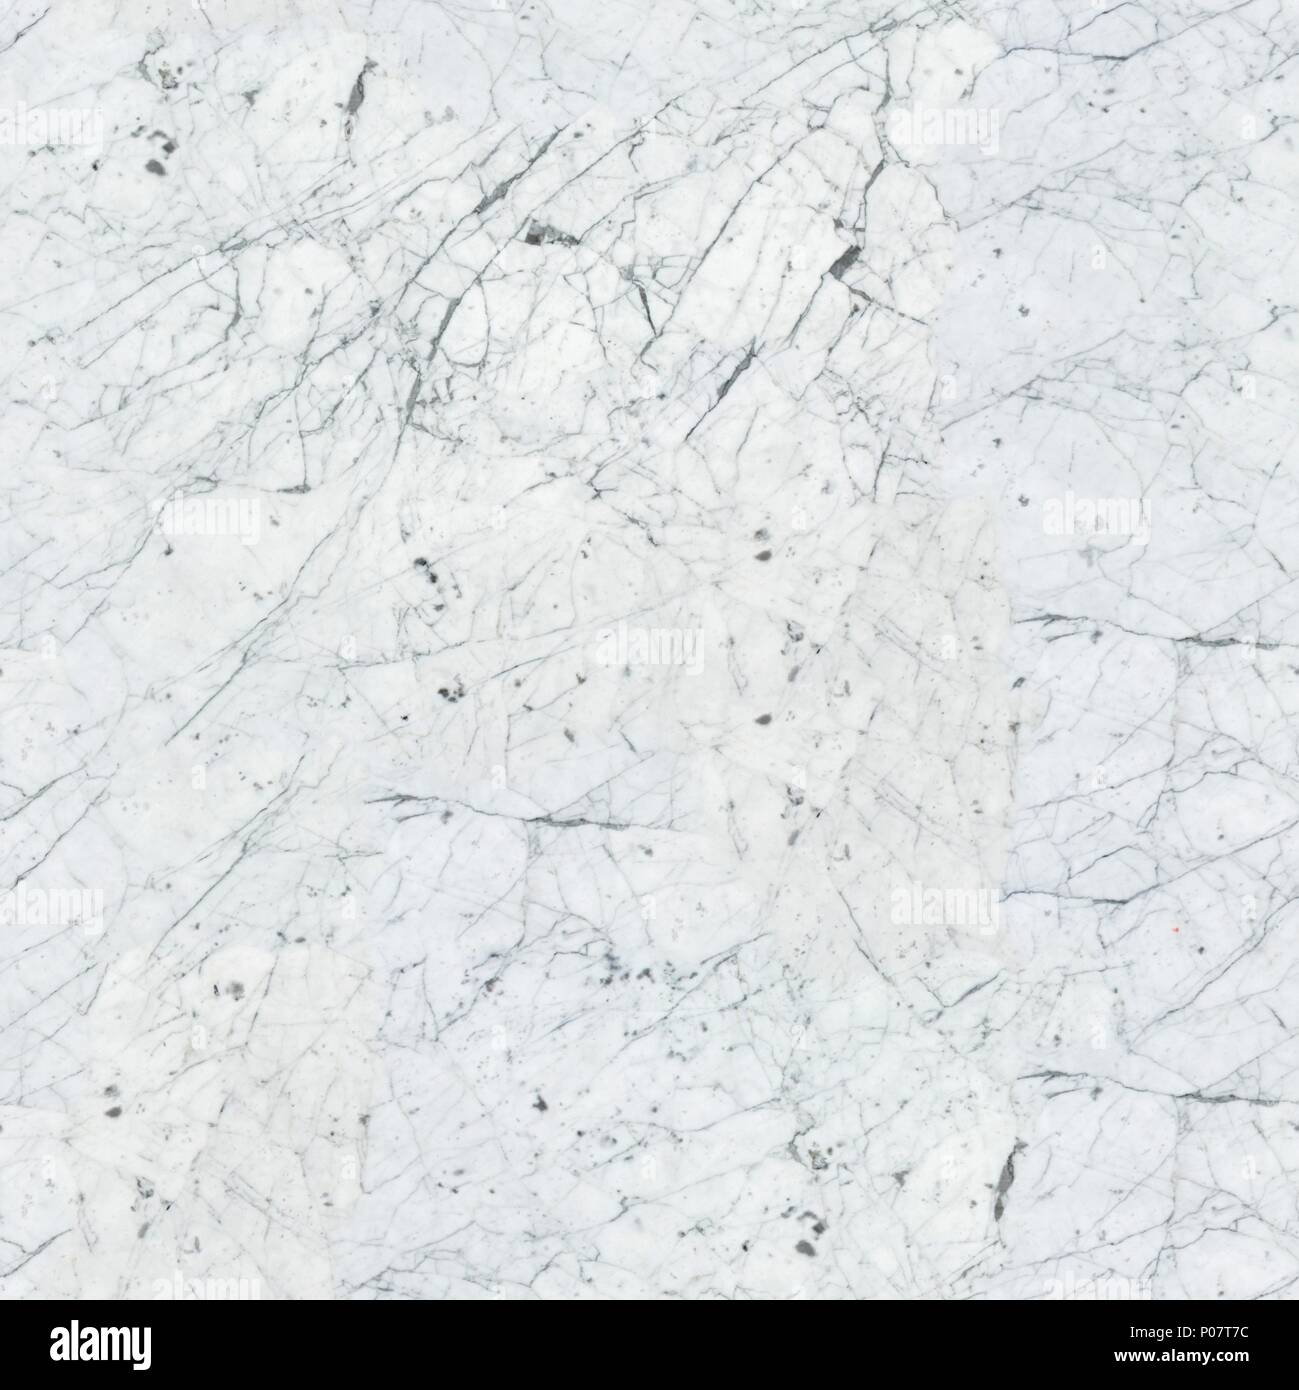 Light Marble Texture Seamless Square Background Tile Ready Stock Photo Alamy